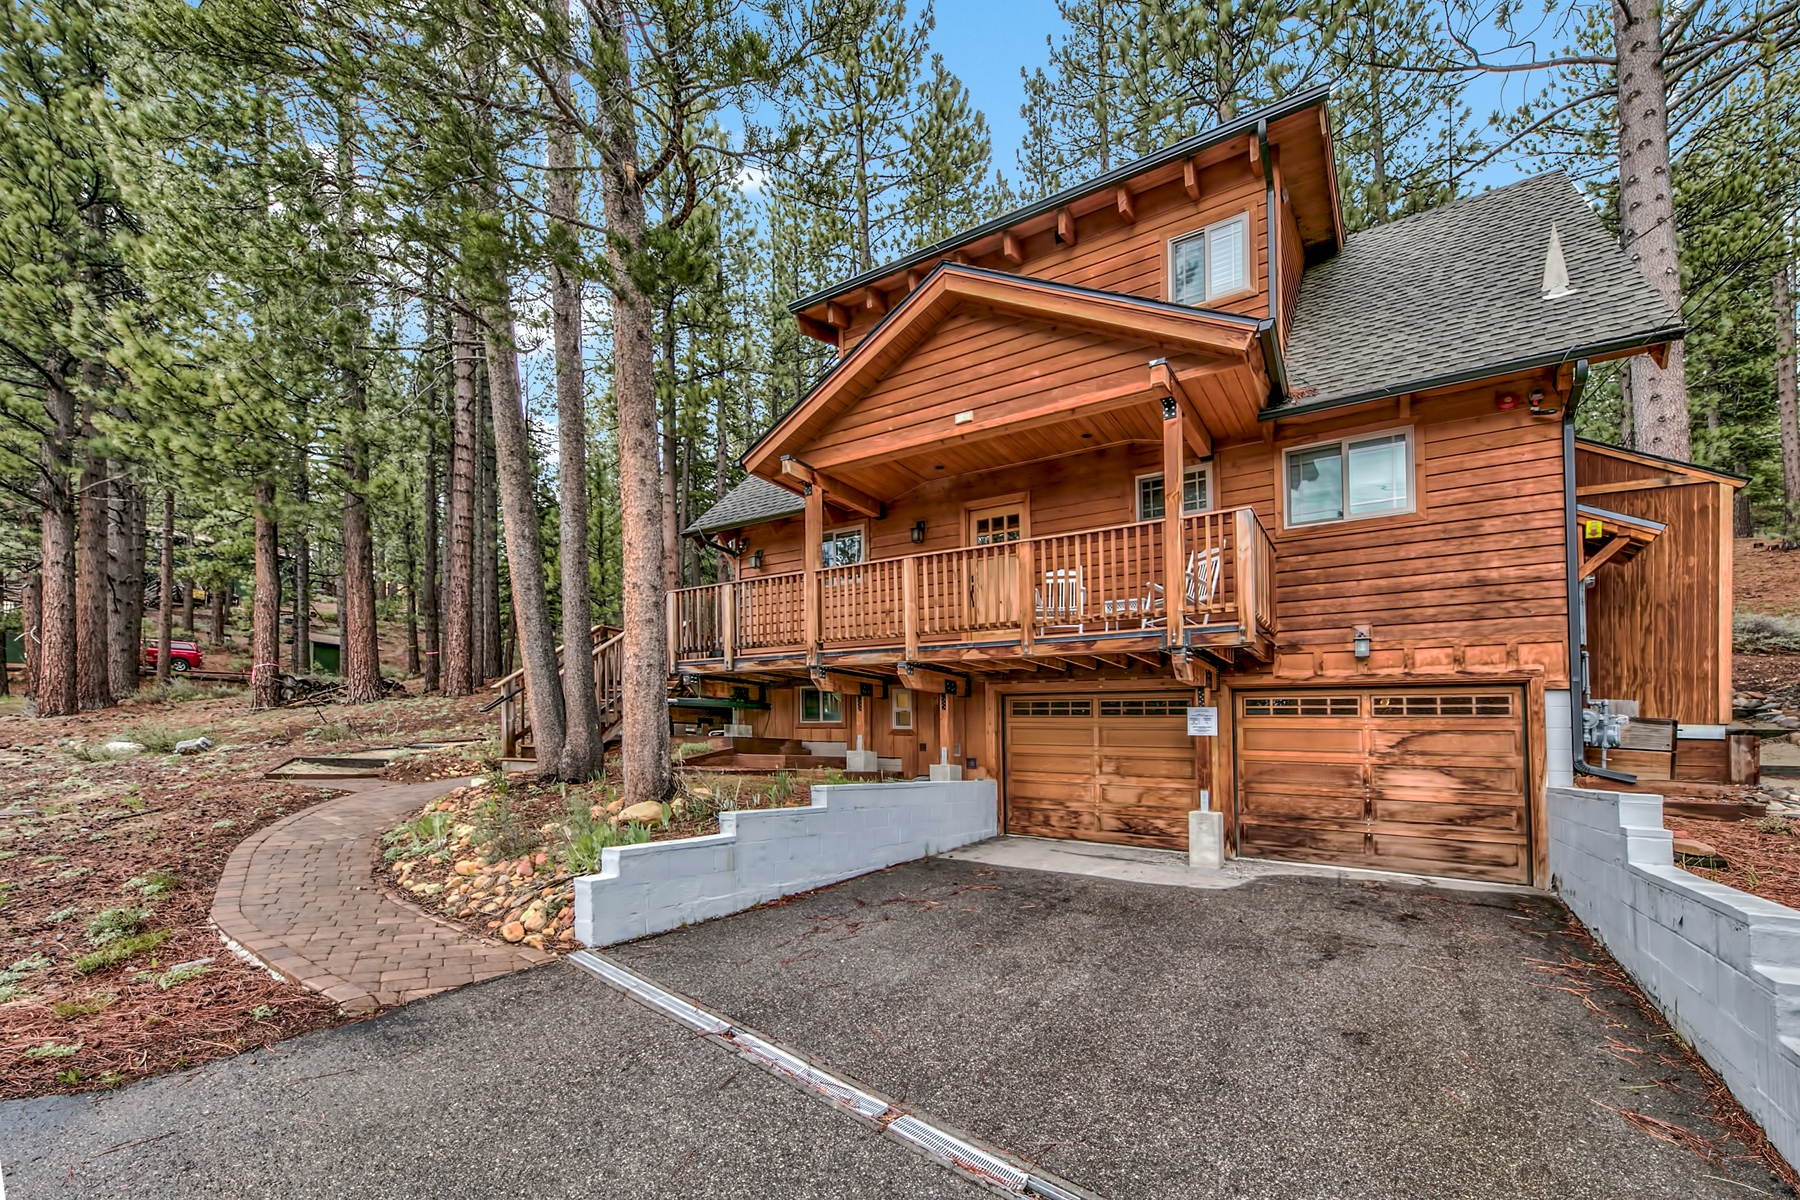 Single Family Homes for Active at 2240 Columbine Trail, South Lake Tahoe, CA 96150 2240 Columbine Trail South Lake Tahoe, California 96150 United States